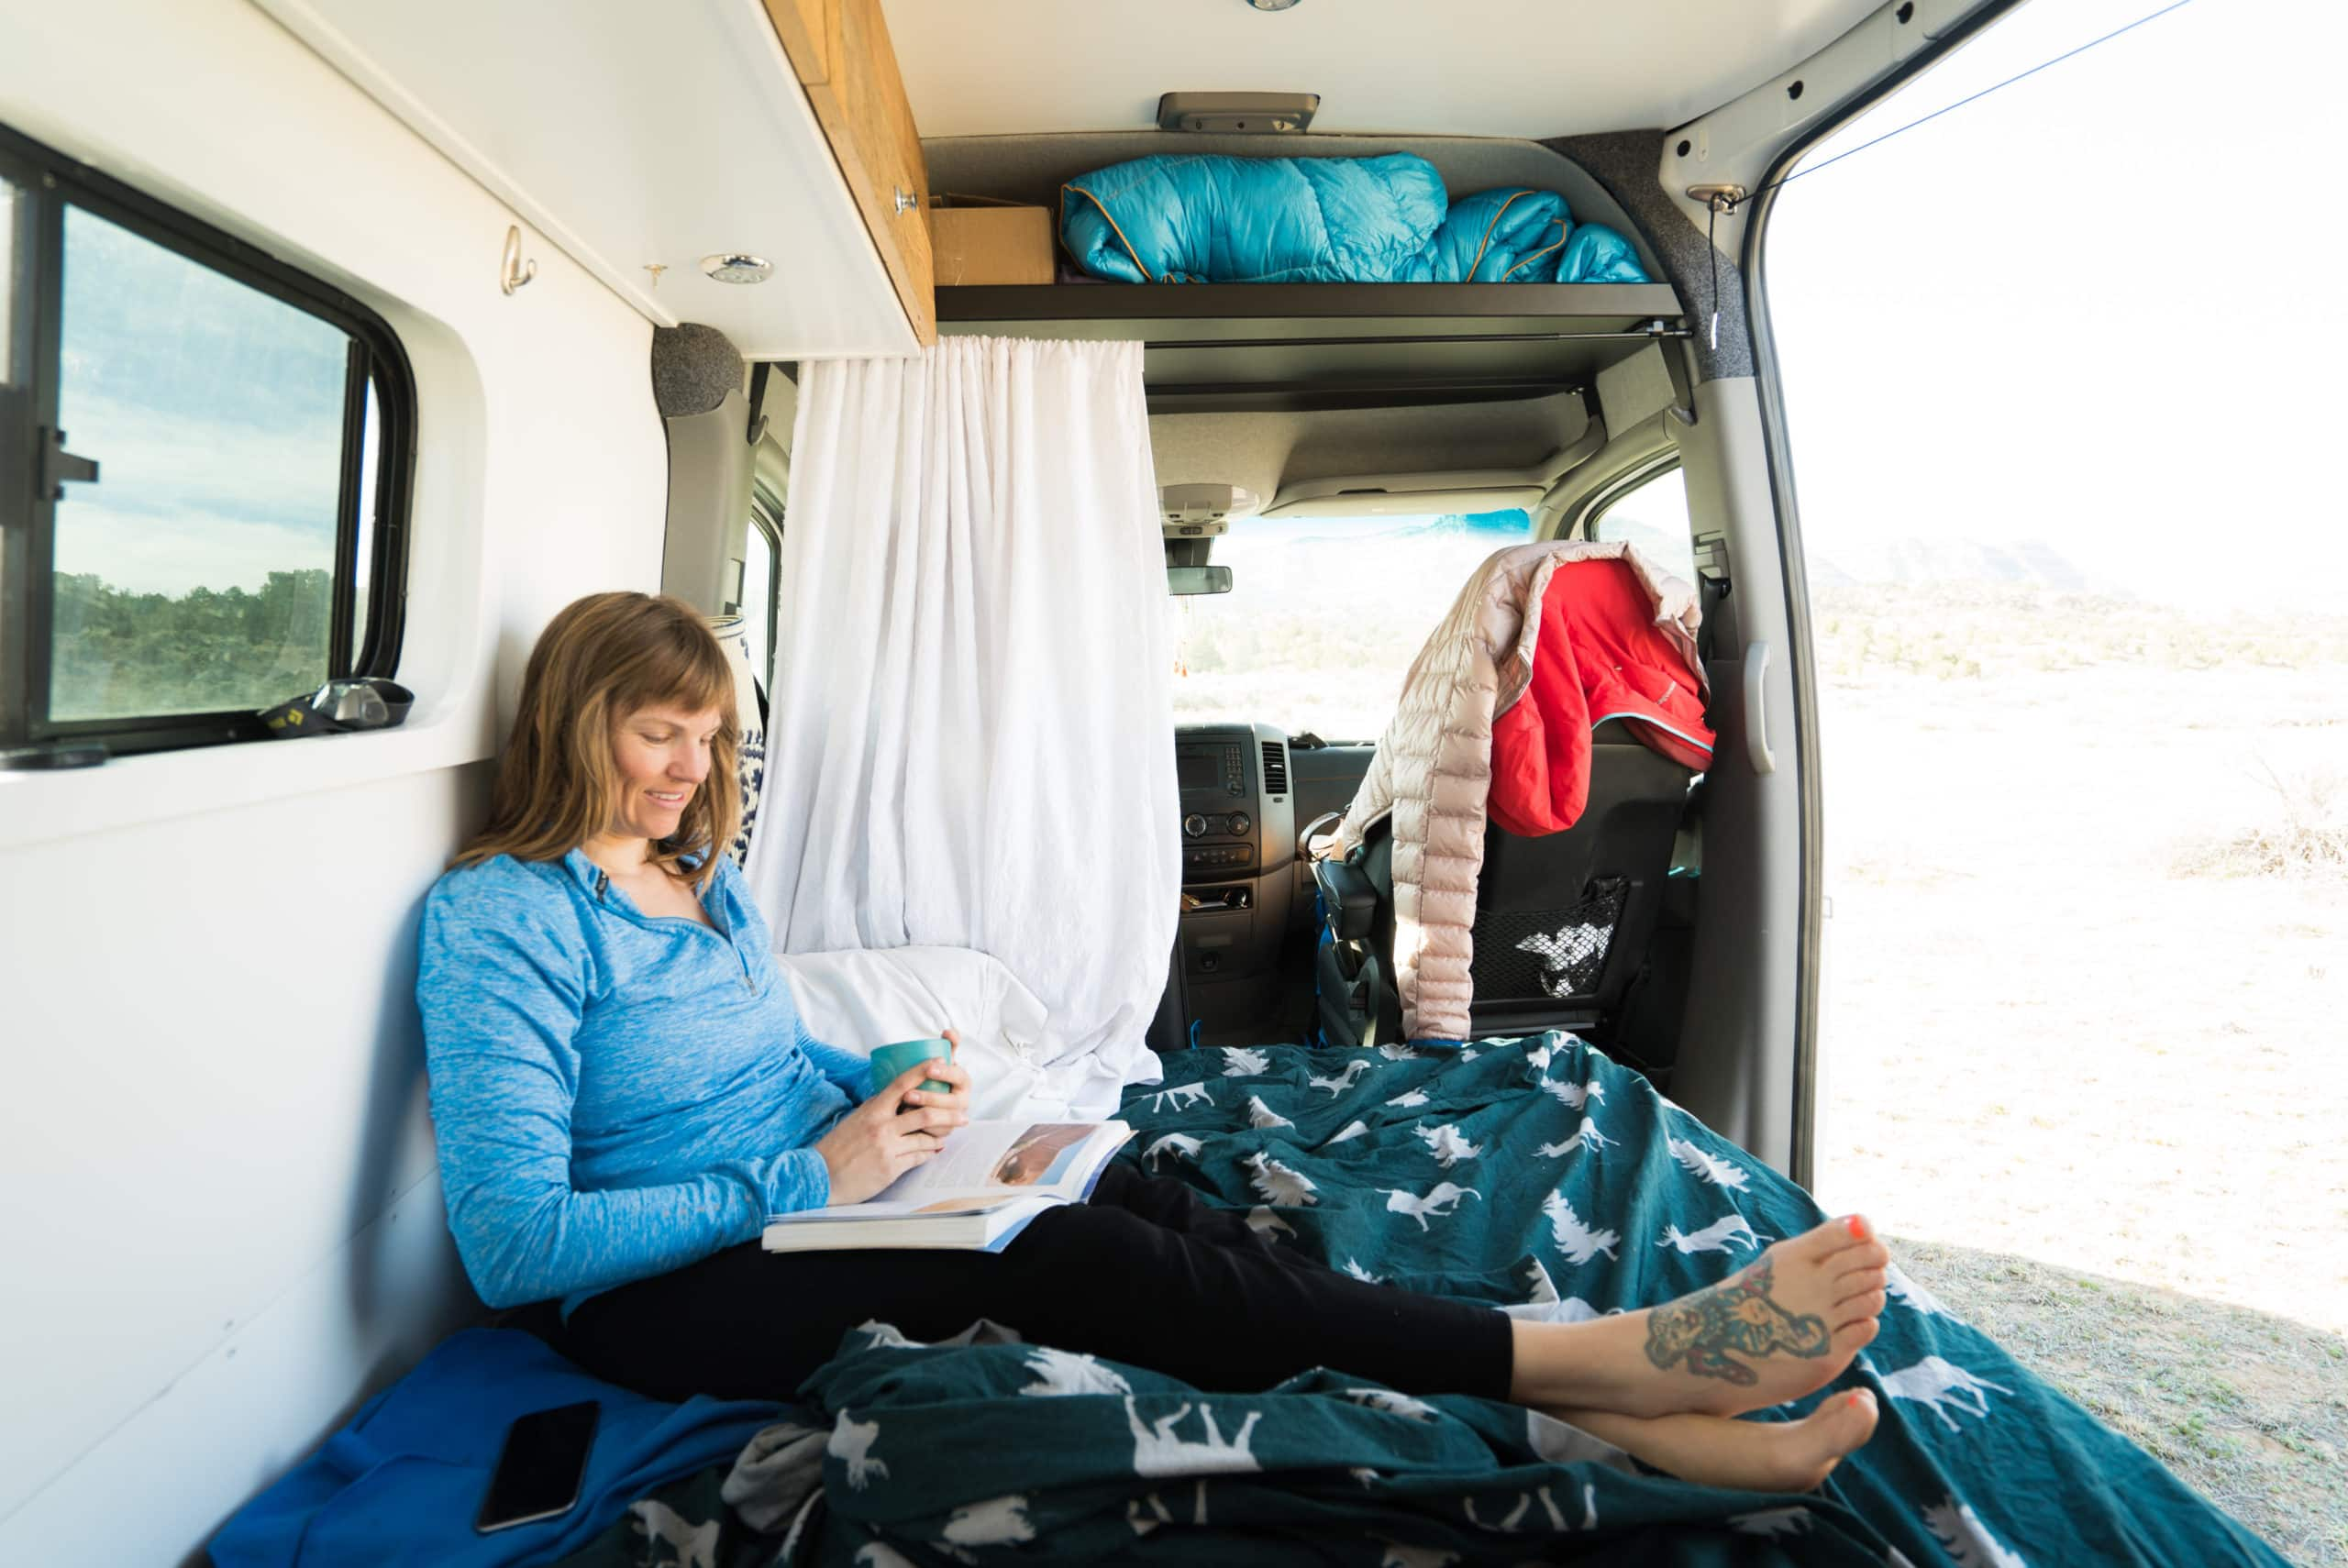 Before you move into your van full-time, you need to set up a home address. Learn about the popular states to establish residency and how to get mail.